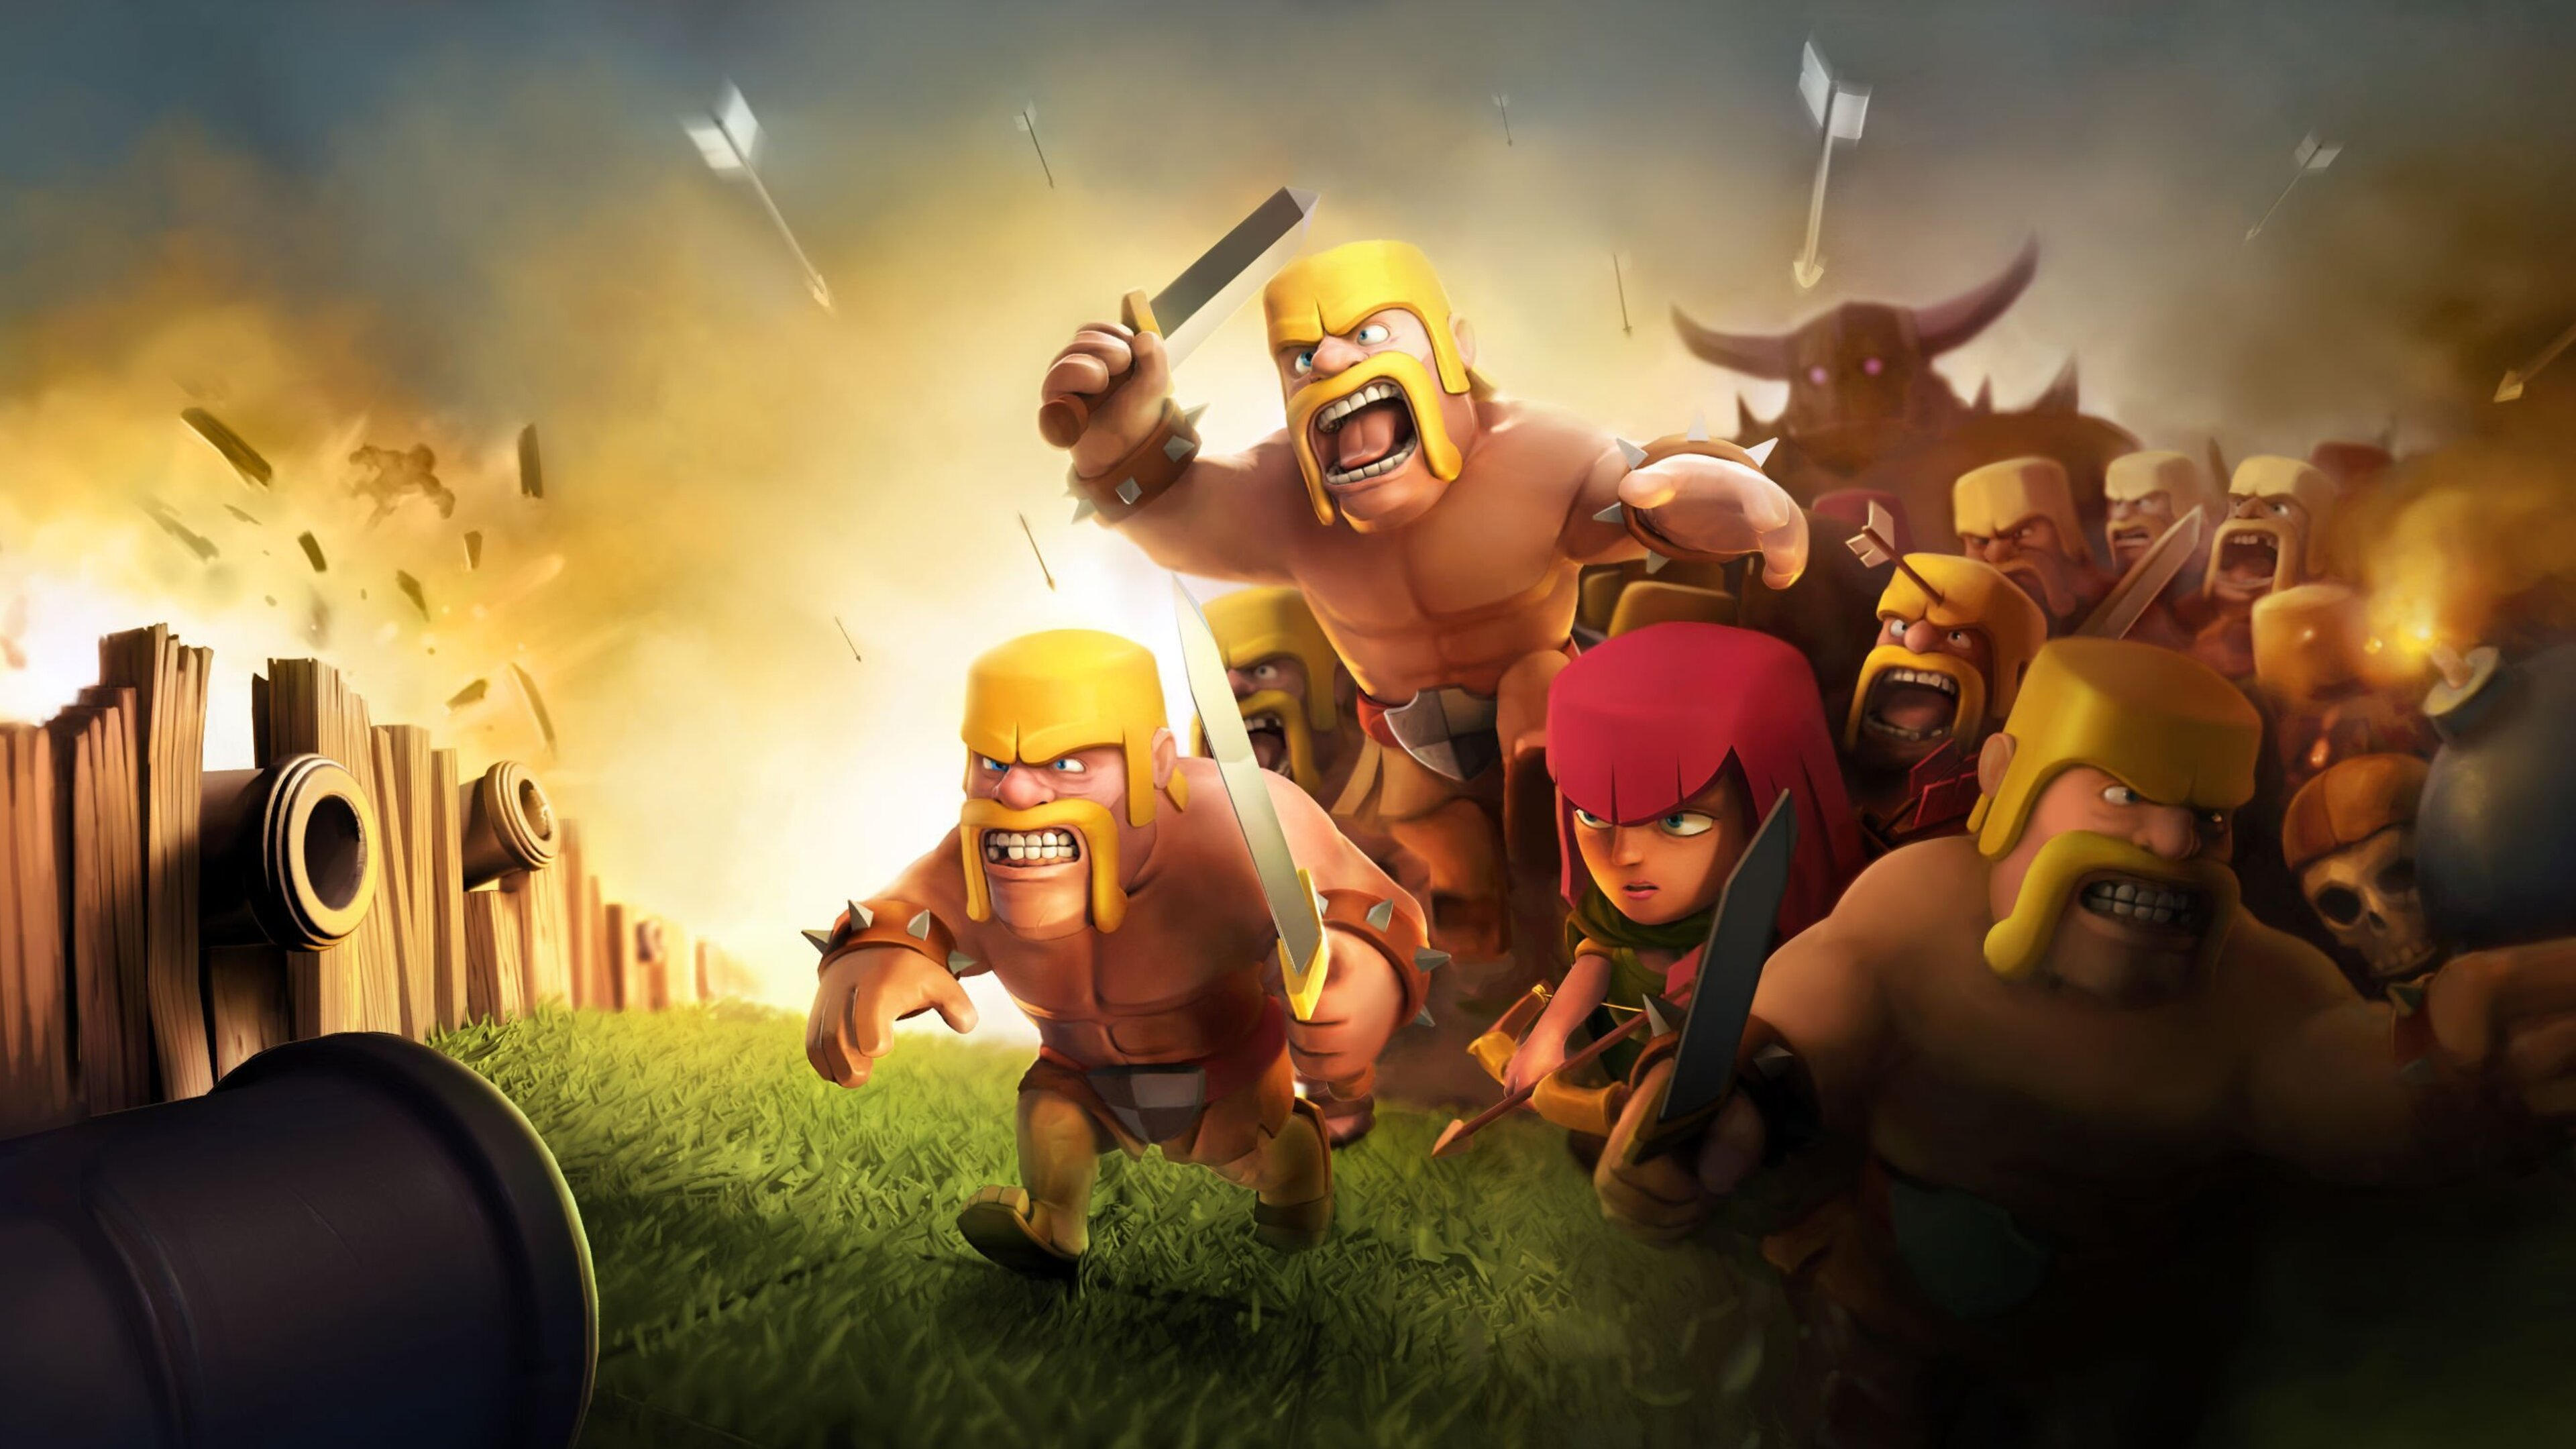 Barbarian Clash Of Clans Hd Hd Games 4k Wallpapers: 3840x2160 Clash Of Clans HD 4k HD 4k Wallpapers, Images